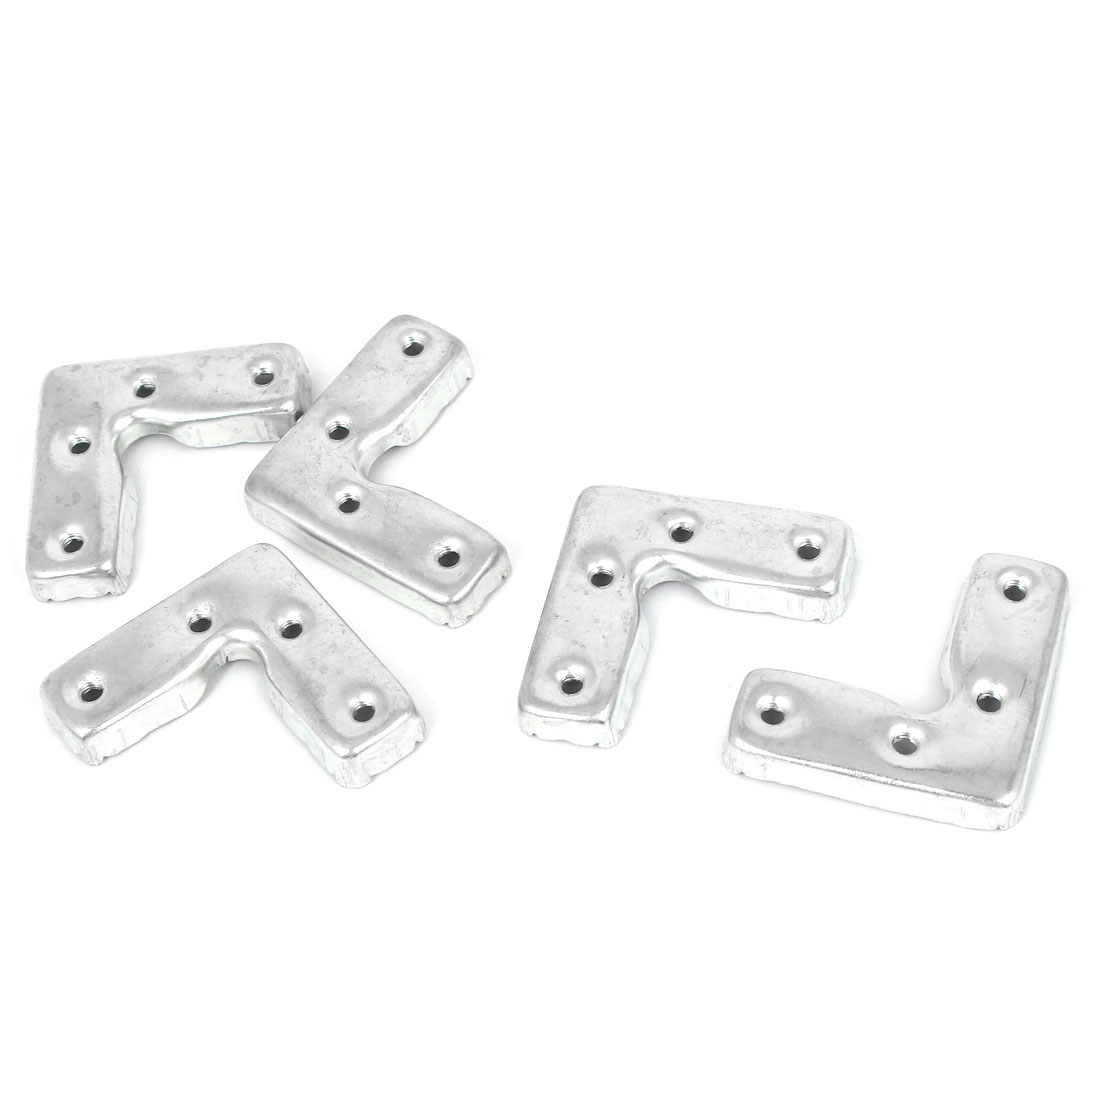 45mm x 45mm x 16mm Corner Brace Joint Right Angle Bracket 5 Pcs